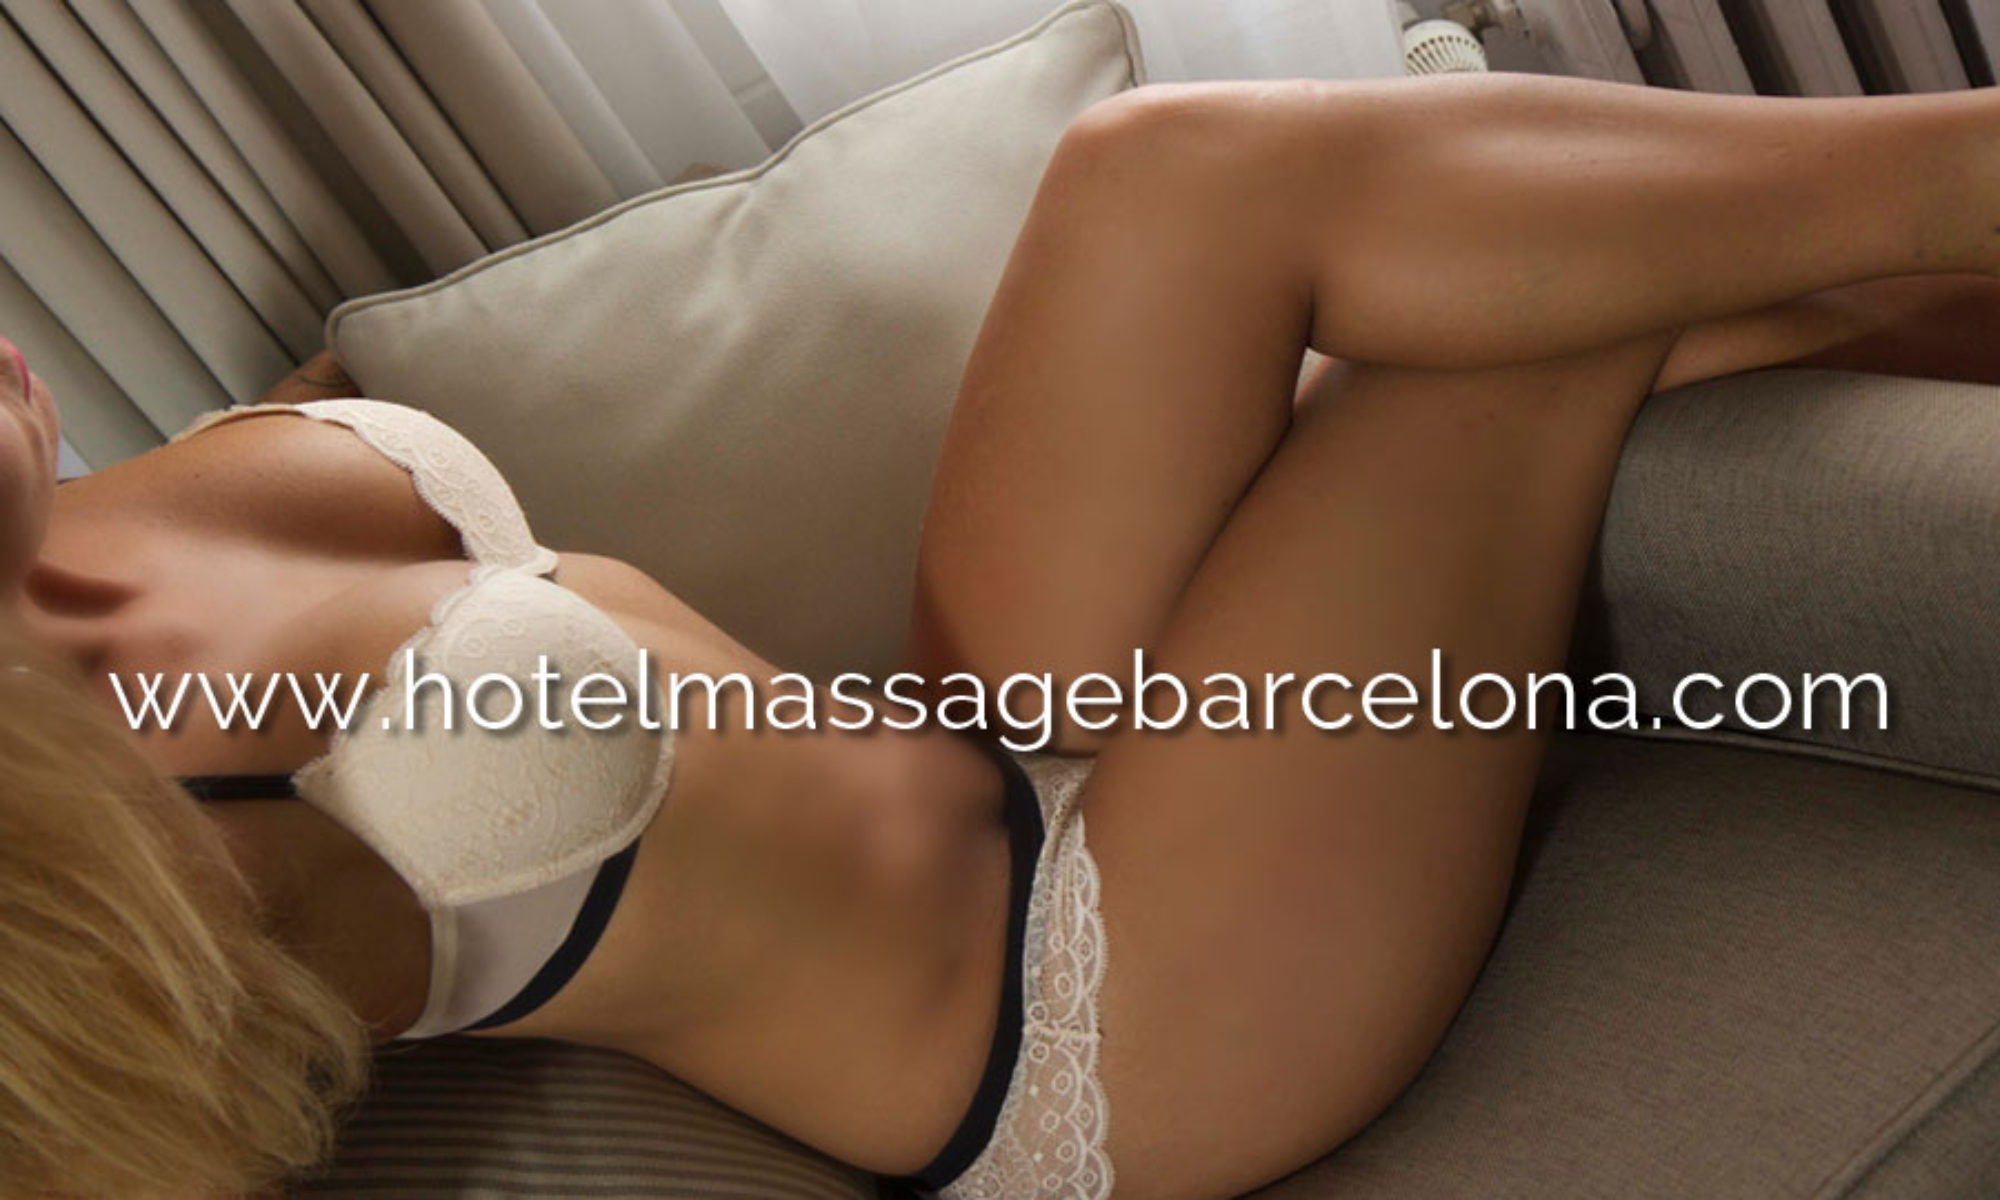 tantra nuru massage barcelona escorts